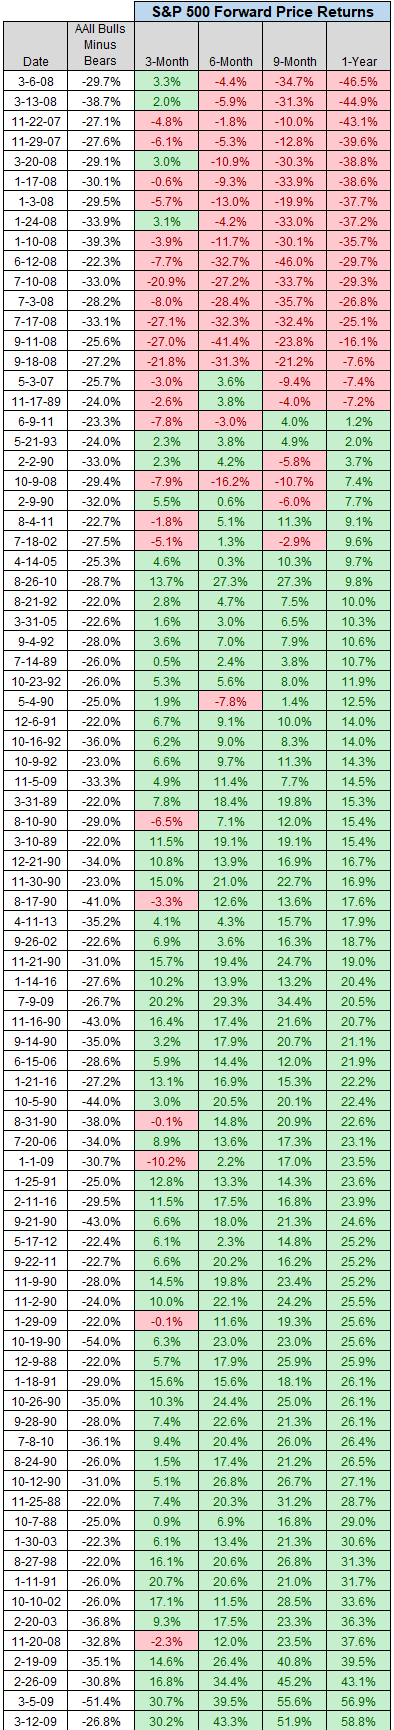 Bottom 5% of AAII Bulls-Bears Readings and S&P 500 Forward Price Returns chart5